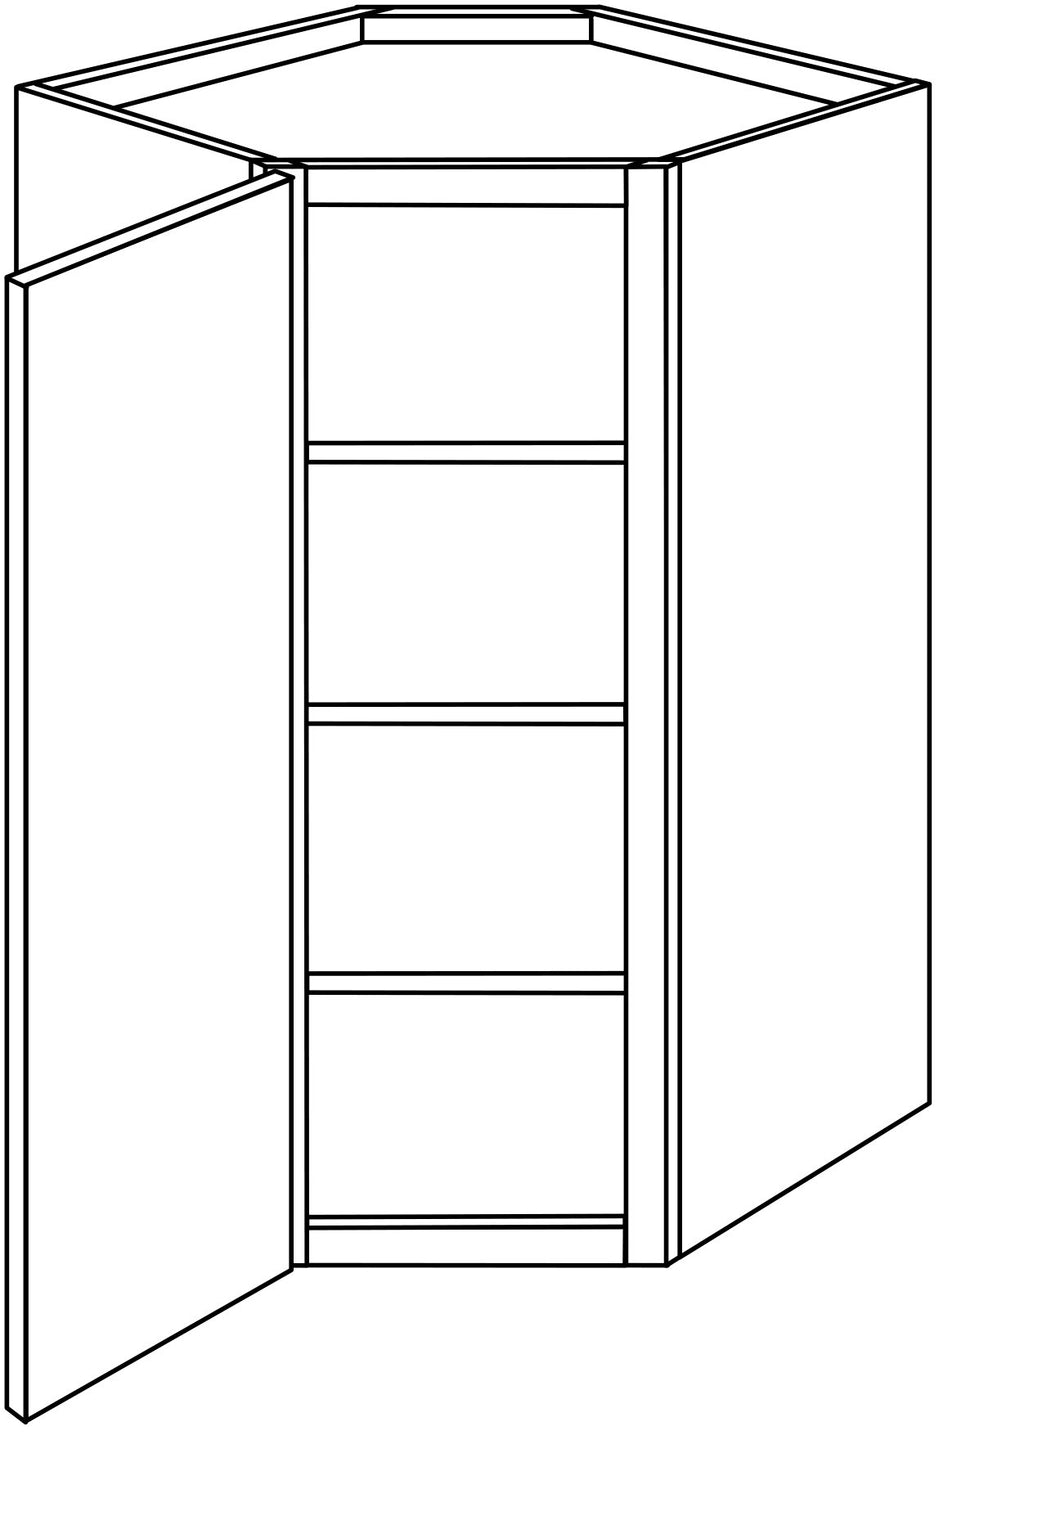 DOVER WALL CORNER CABINETS: 42